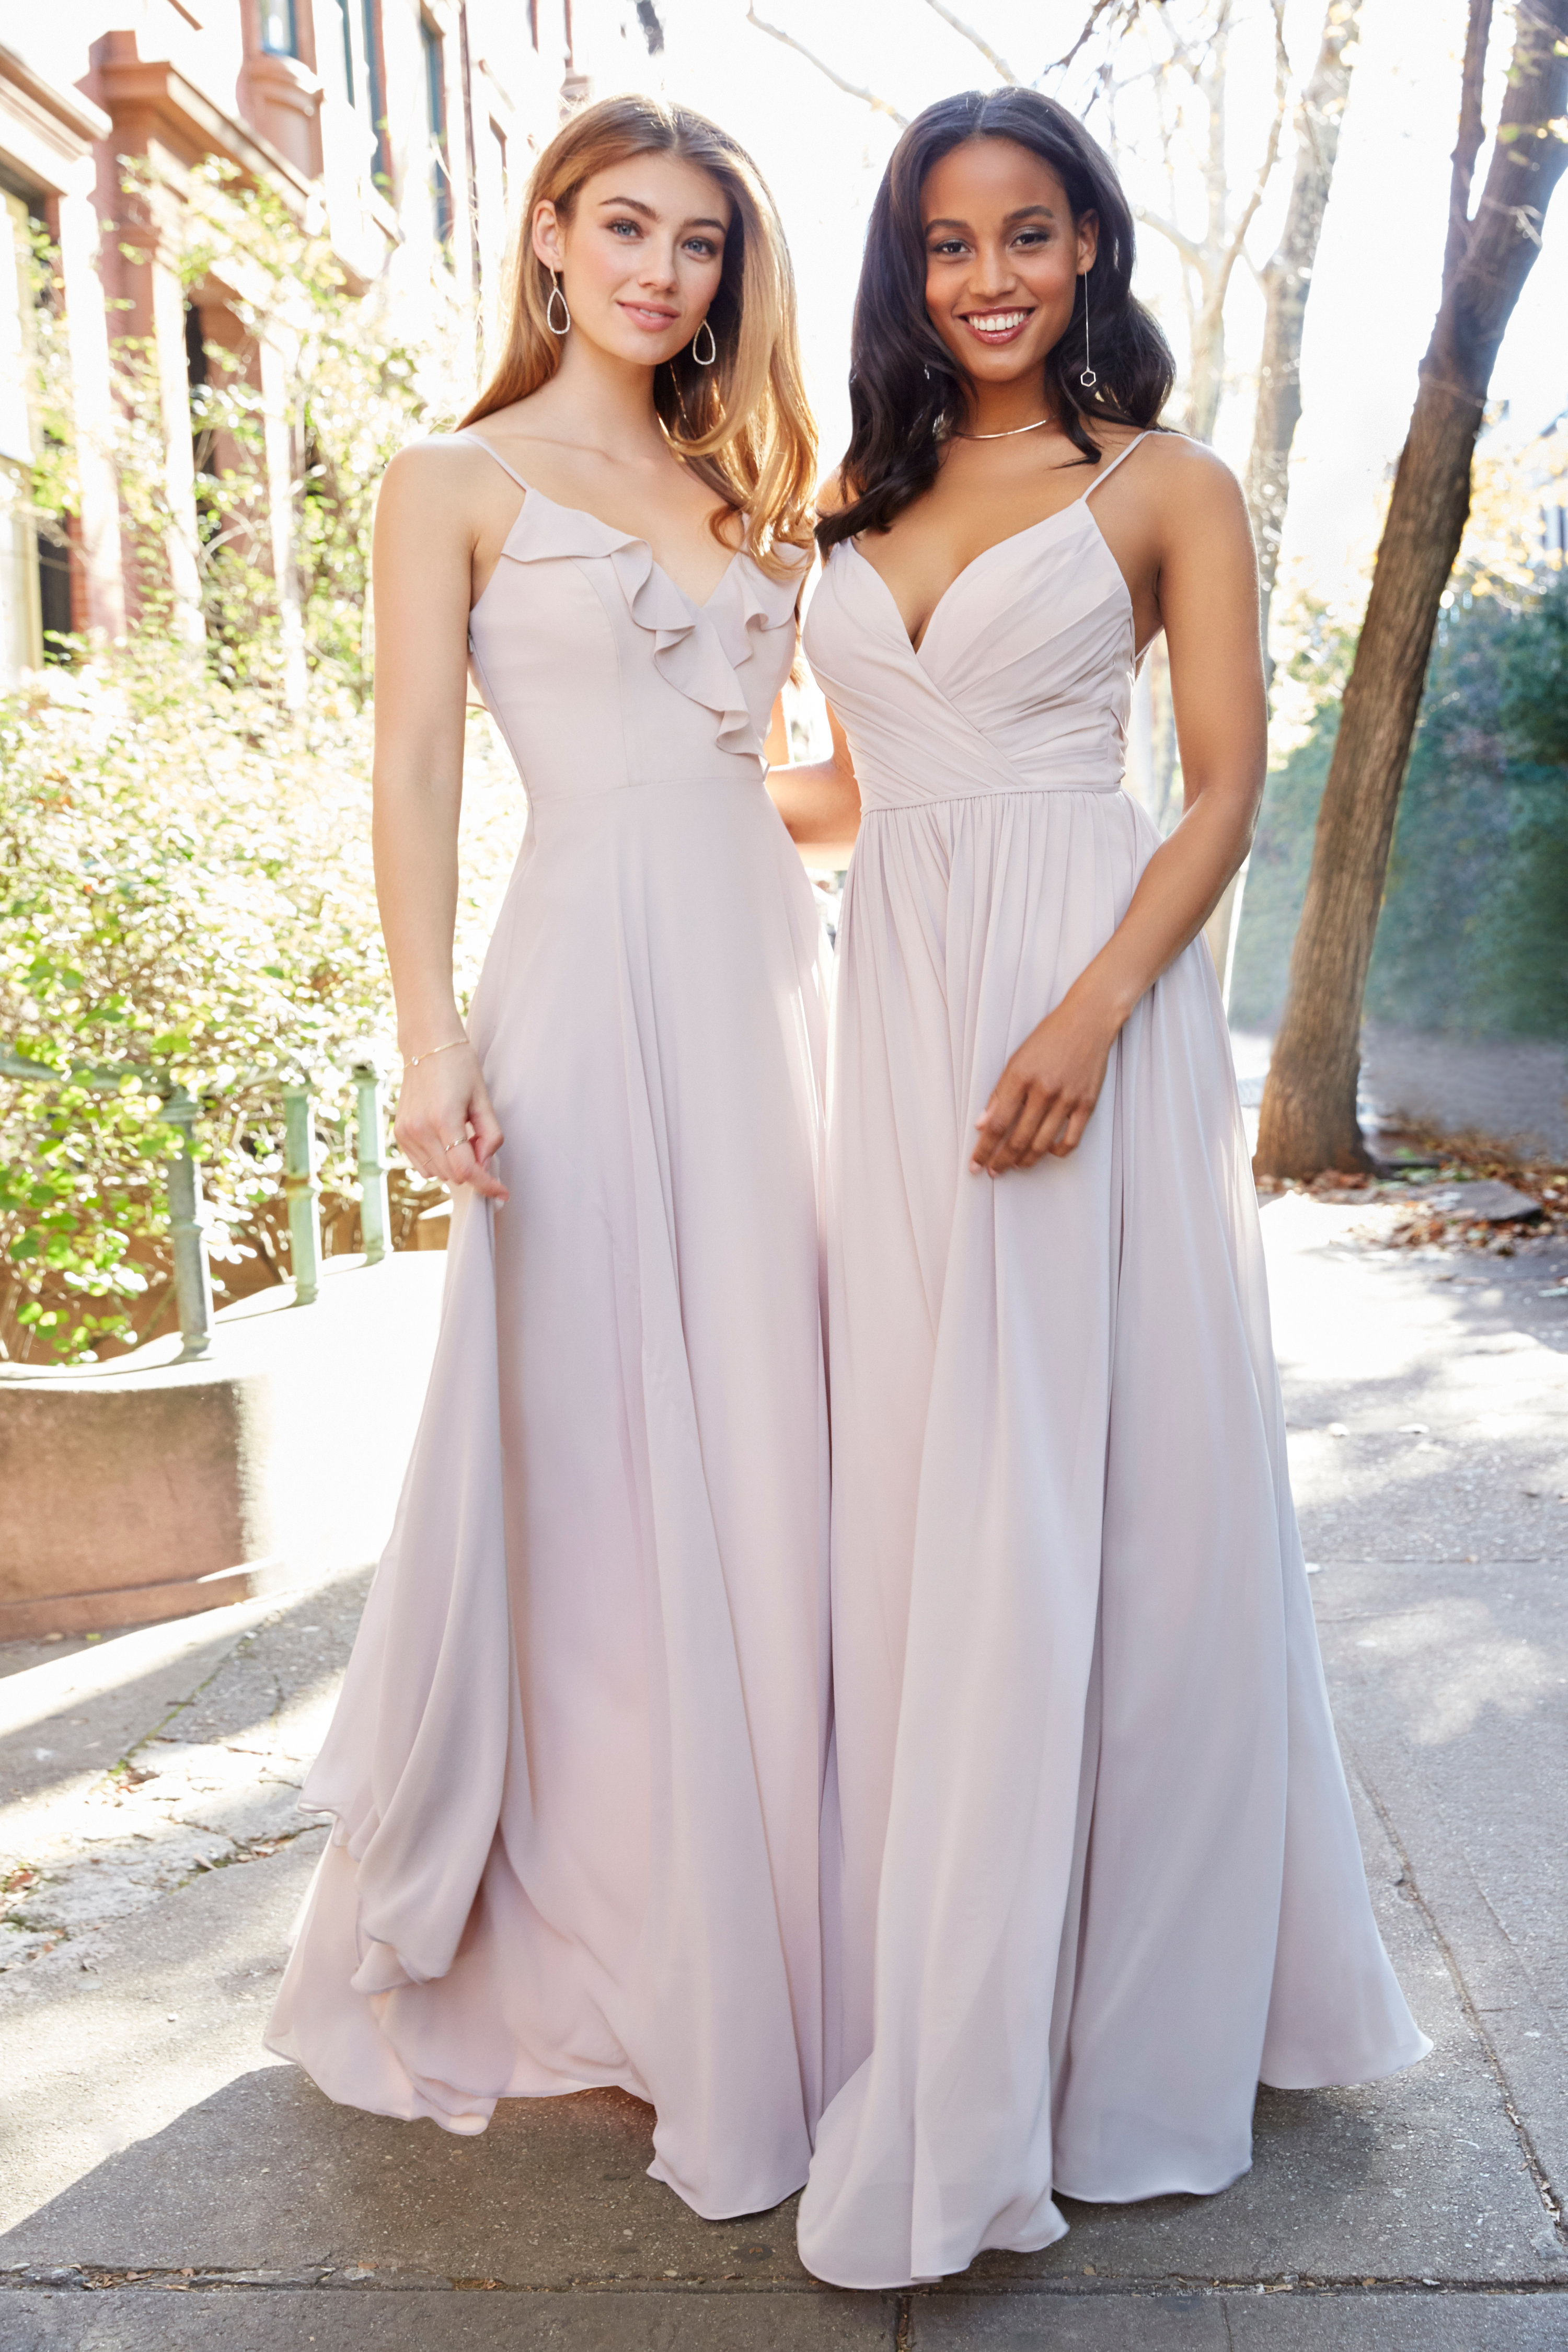 396e2d4c3c72 You can pick up these pretty styles in Anne Gregory Design in Wicklow and  Padanee Bridal Couture in Leitrim. Please contact bridal stores directly to  ...